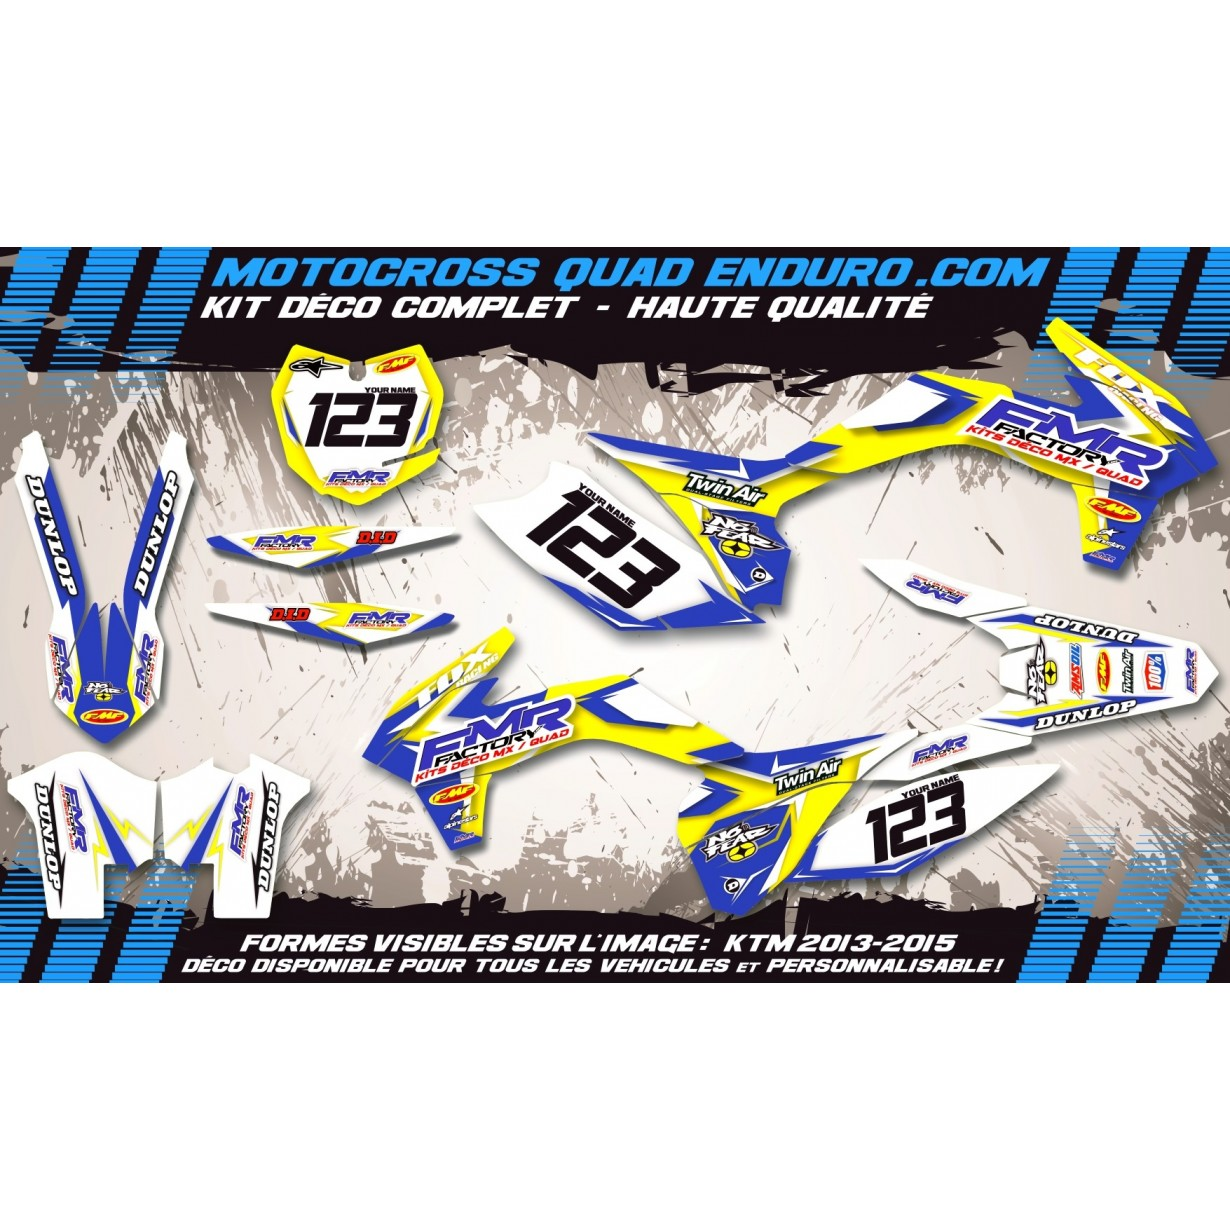 KIT DÉCO Perso 90 RAPTOR Quad Fmr Factory MA13D